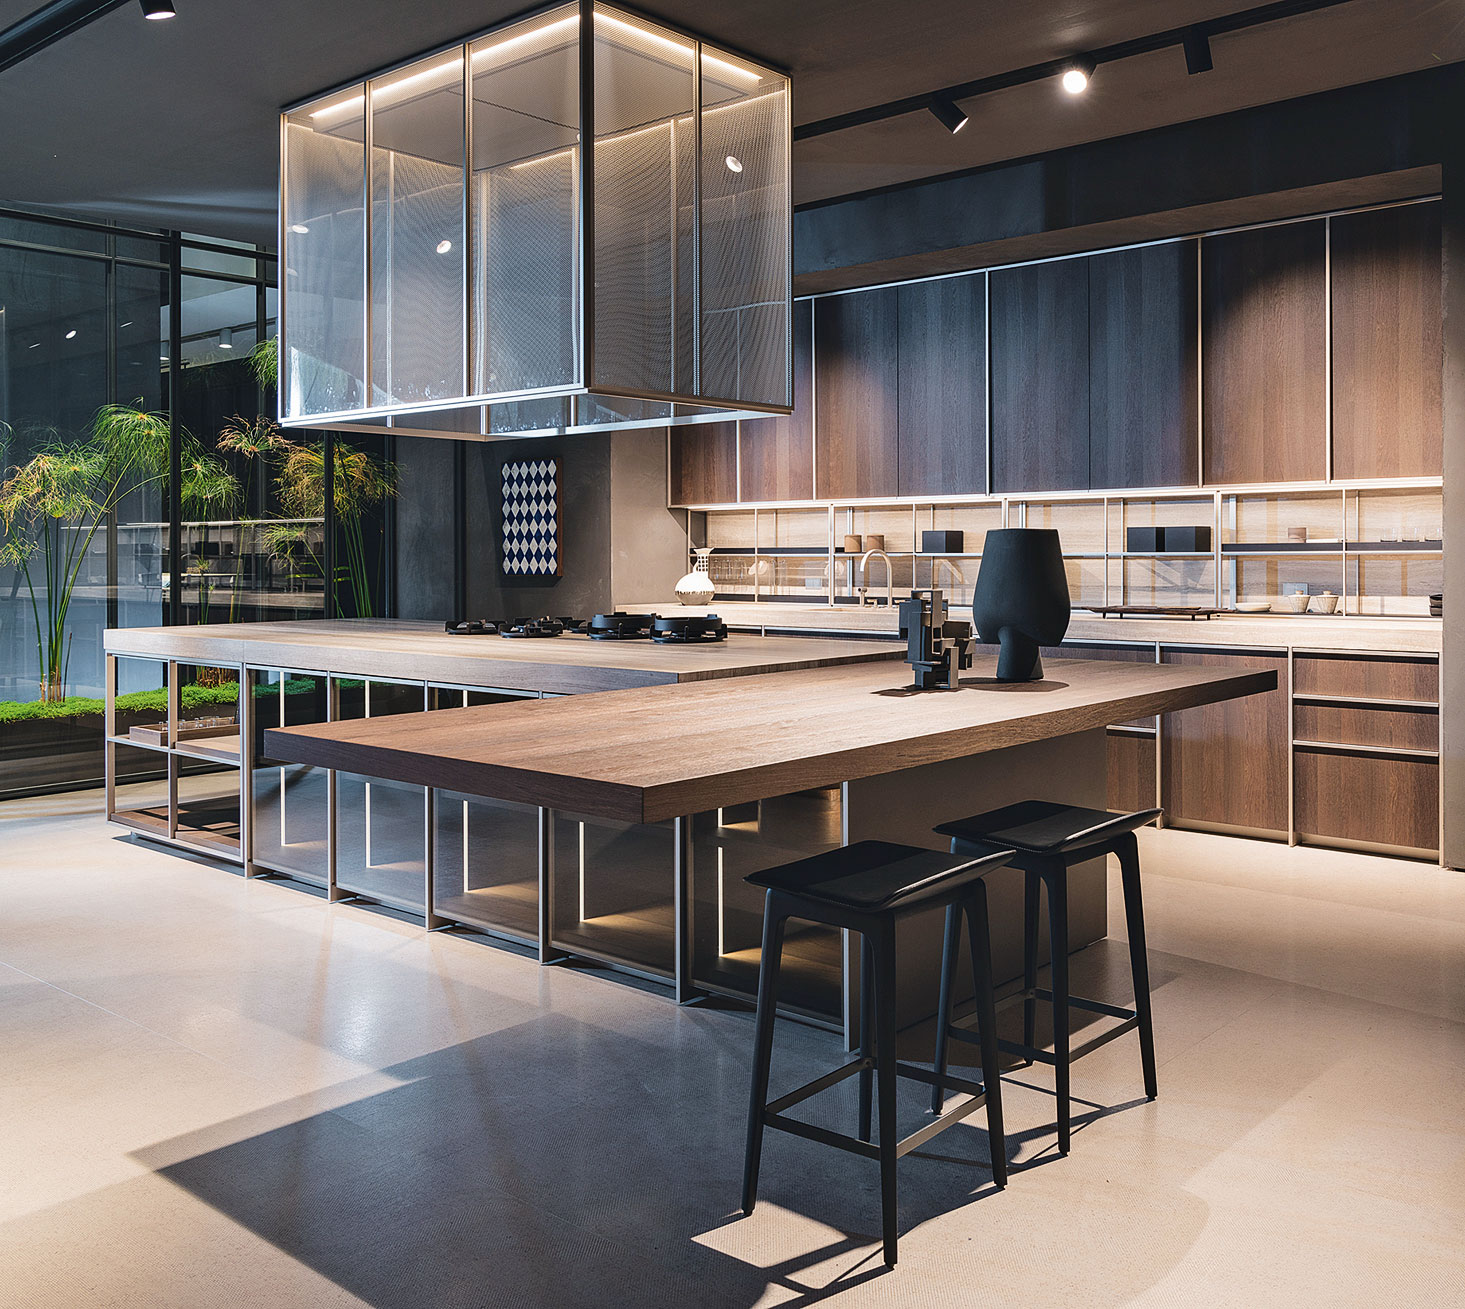 Country Kitchen Pictures 2019: Breaking: The Latest Kitchen Design Trends For 2019